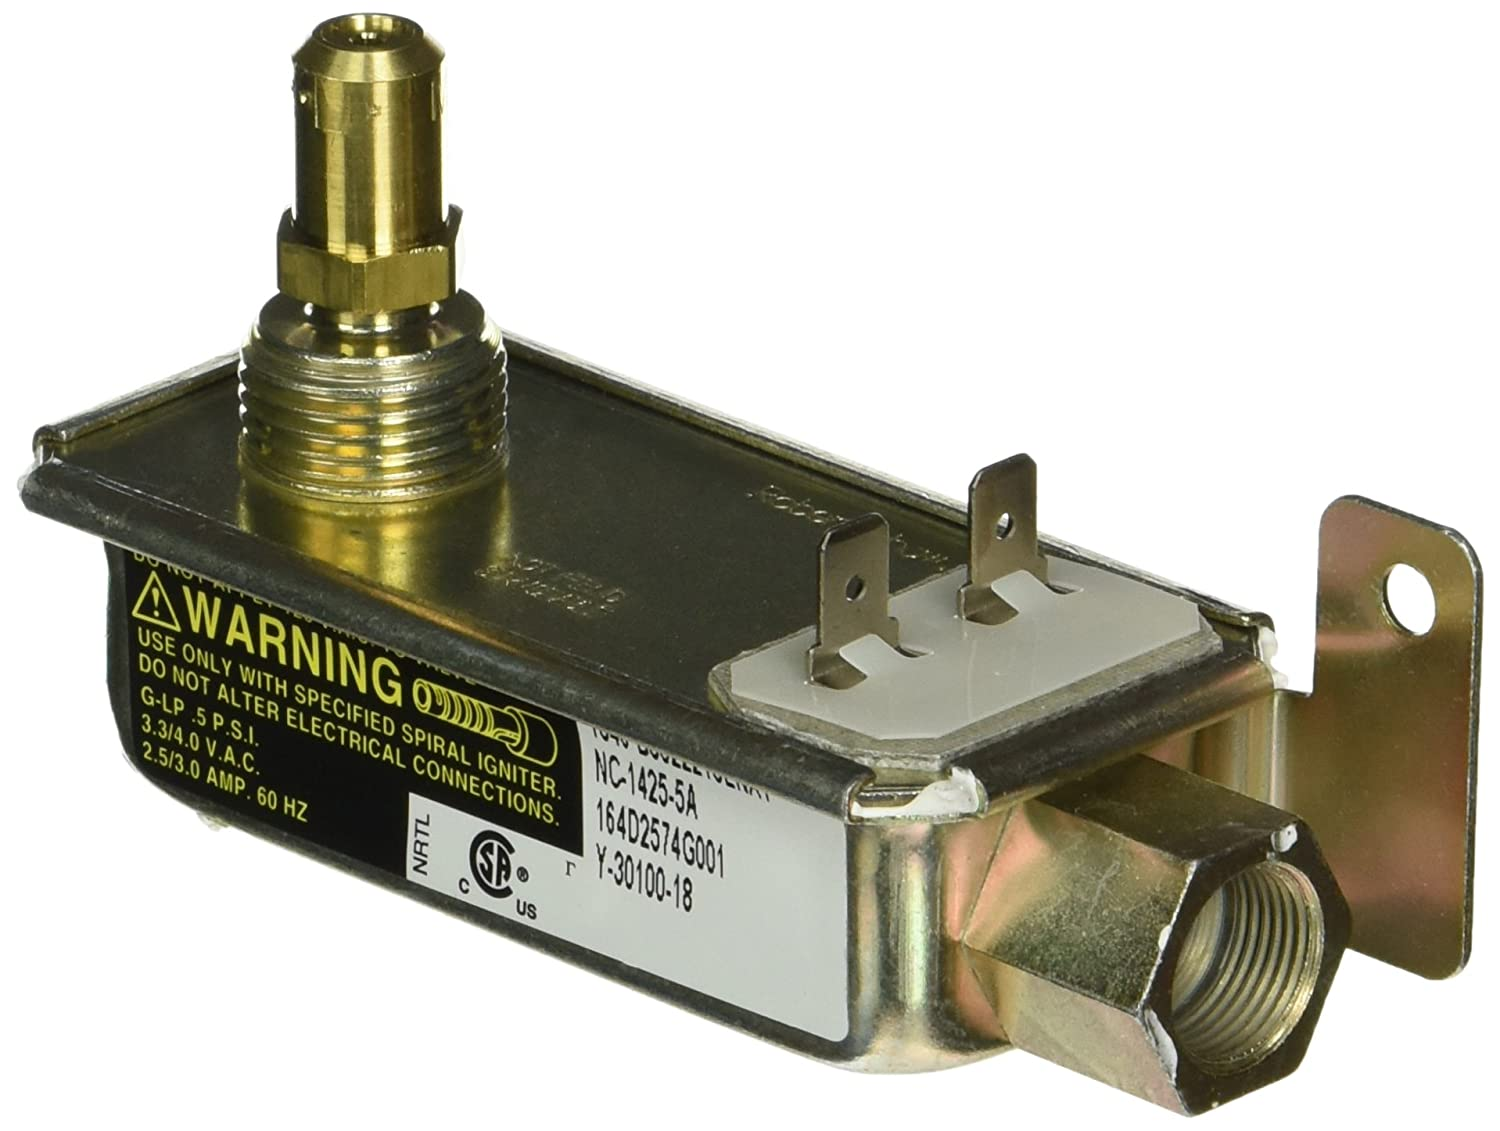 General Electric WB19K13 Oven Safety Valve